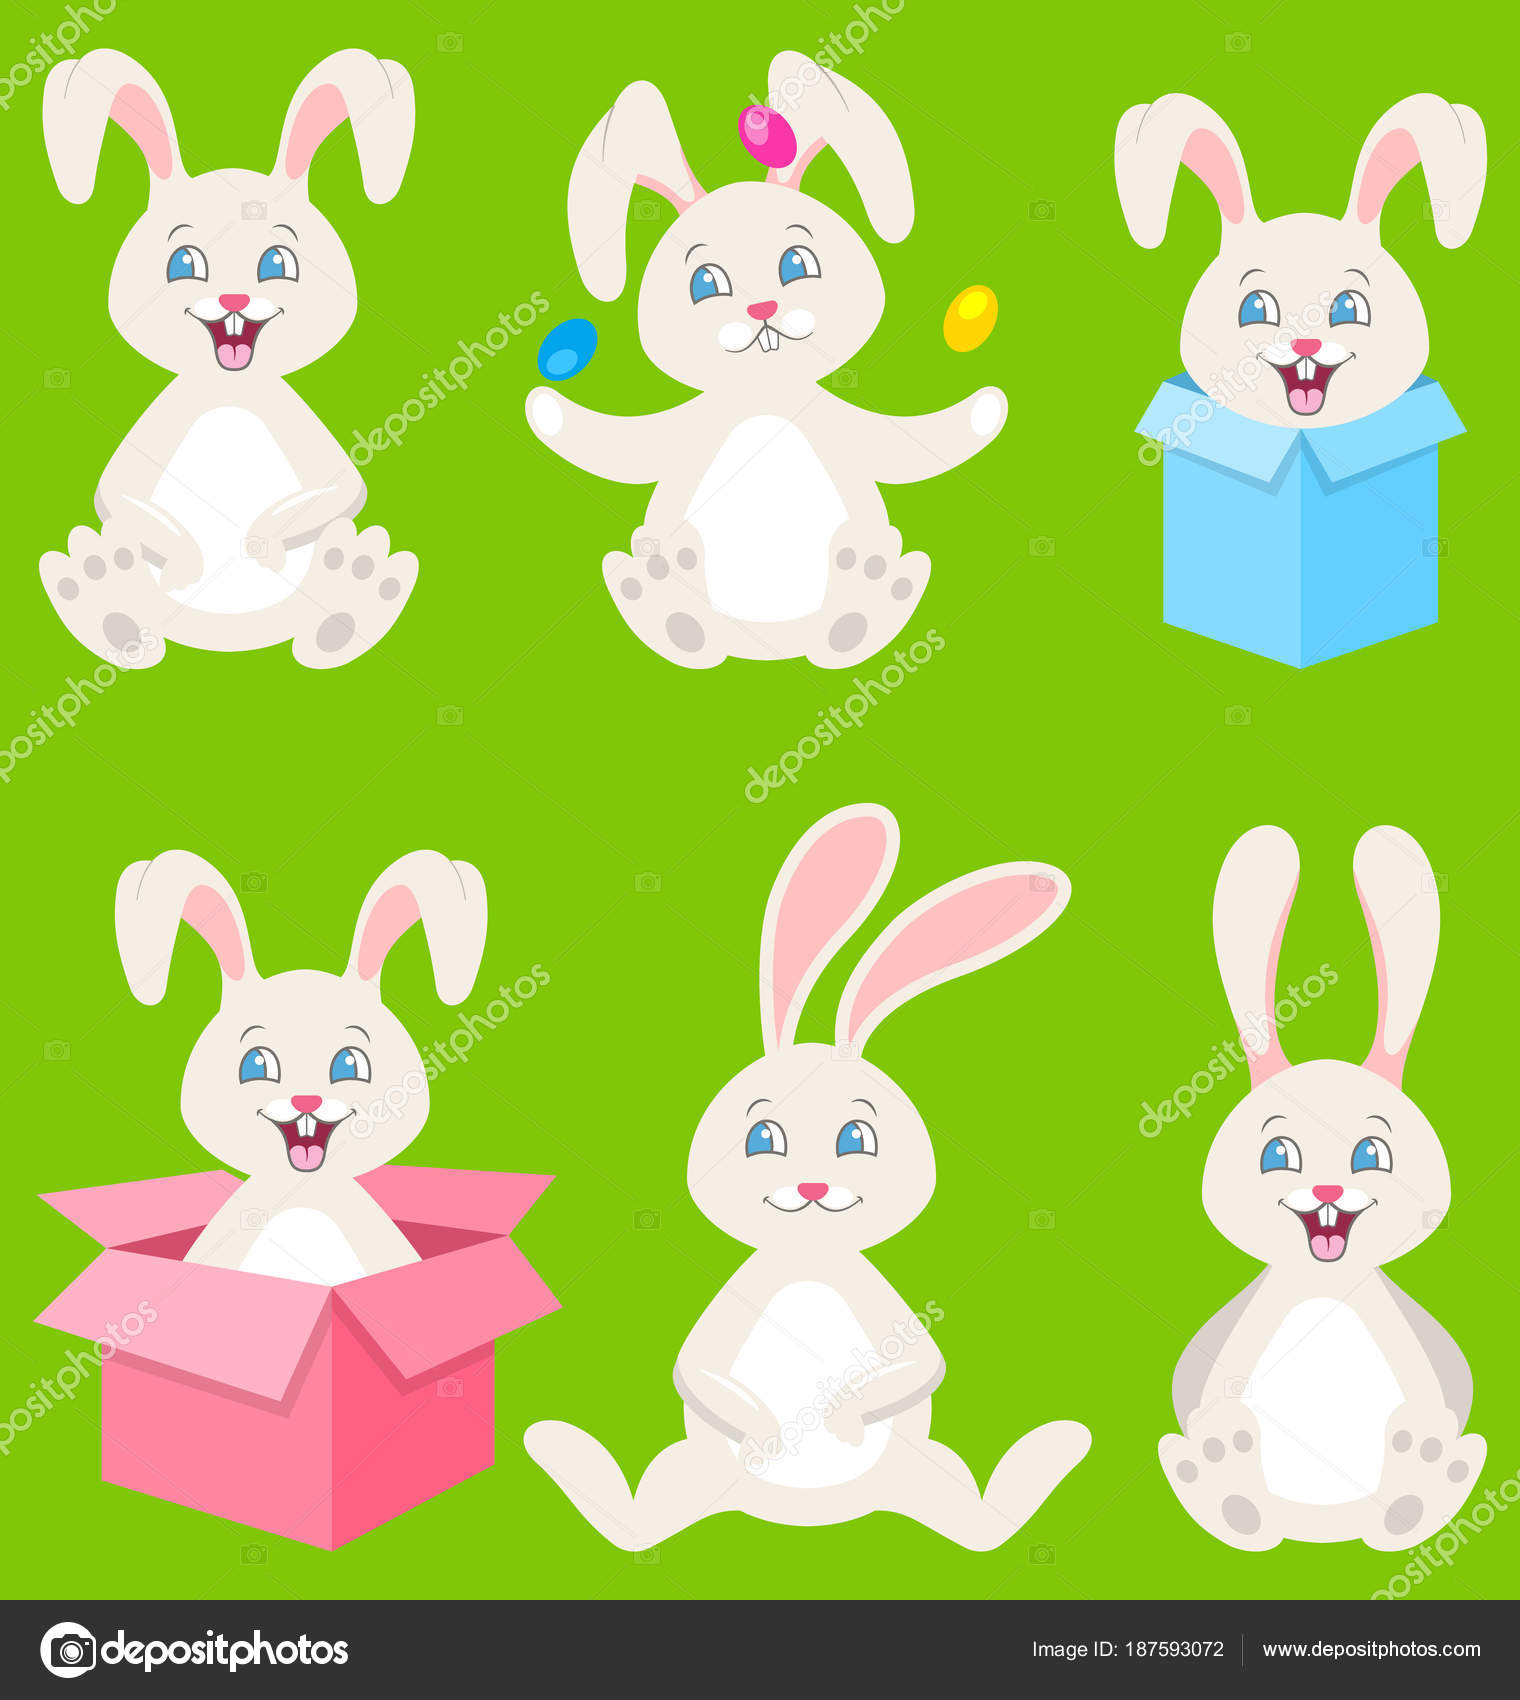 Collection happy easter bunnies with eggs gift boxes cute rabbits collection happy easter bunnies with eggs gift boxes cute rabbits illustration vector vector by smeagorl negle Image collections